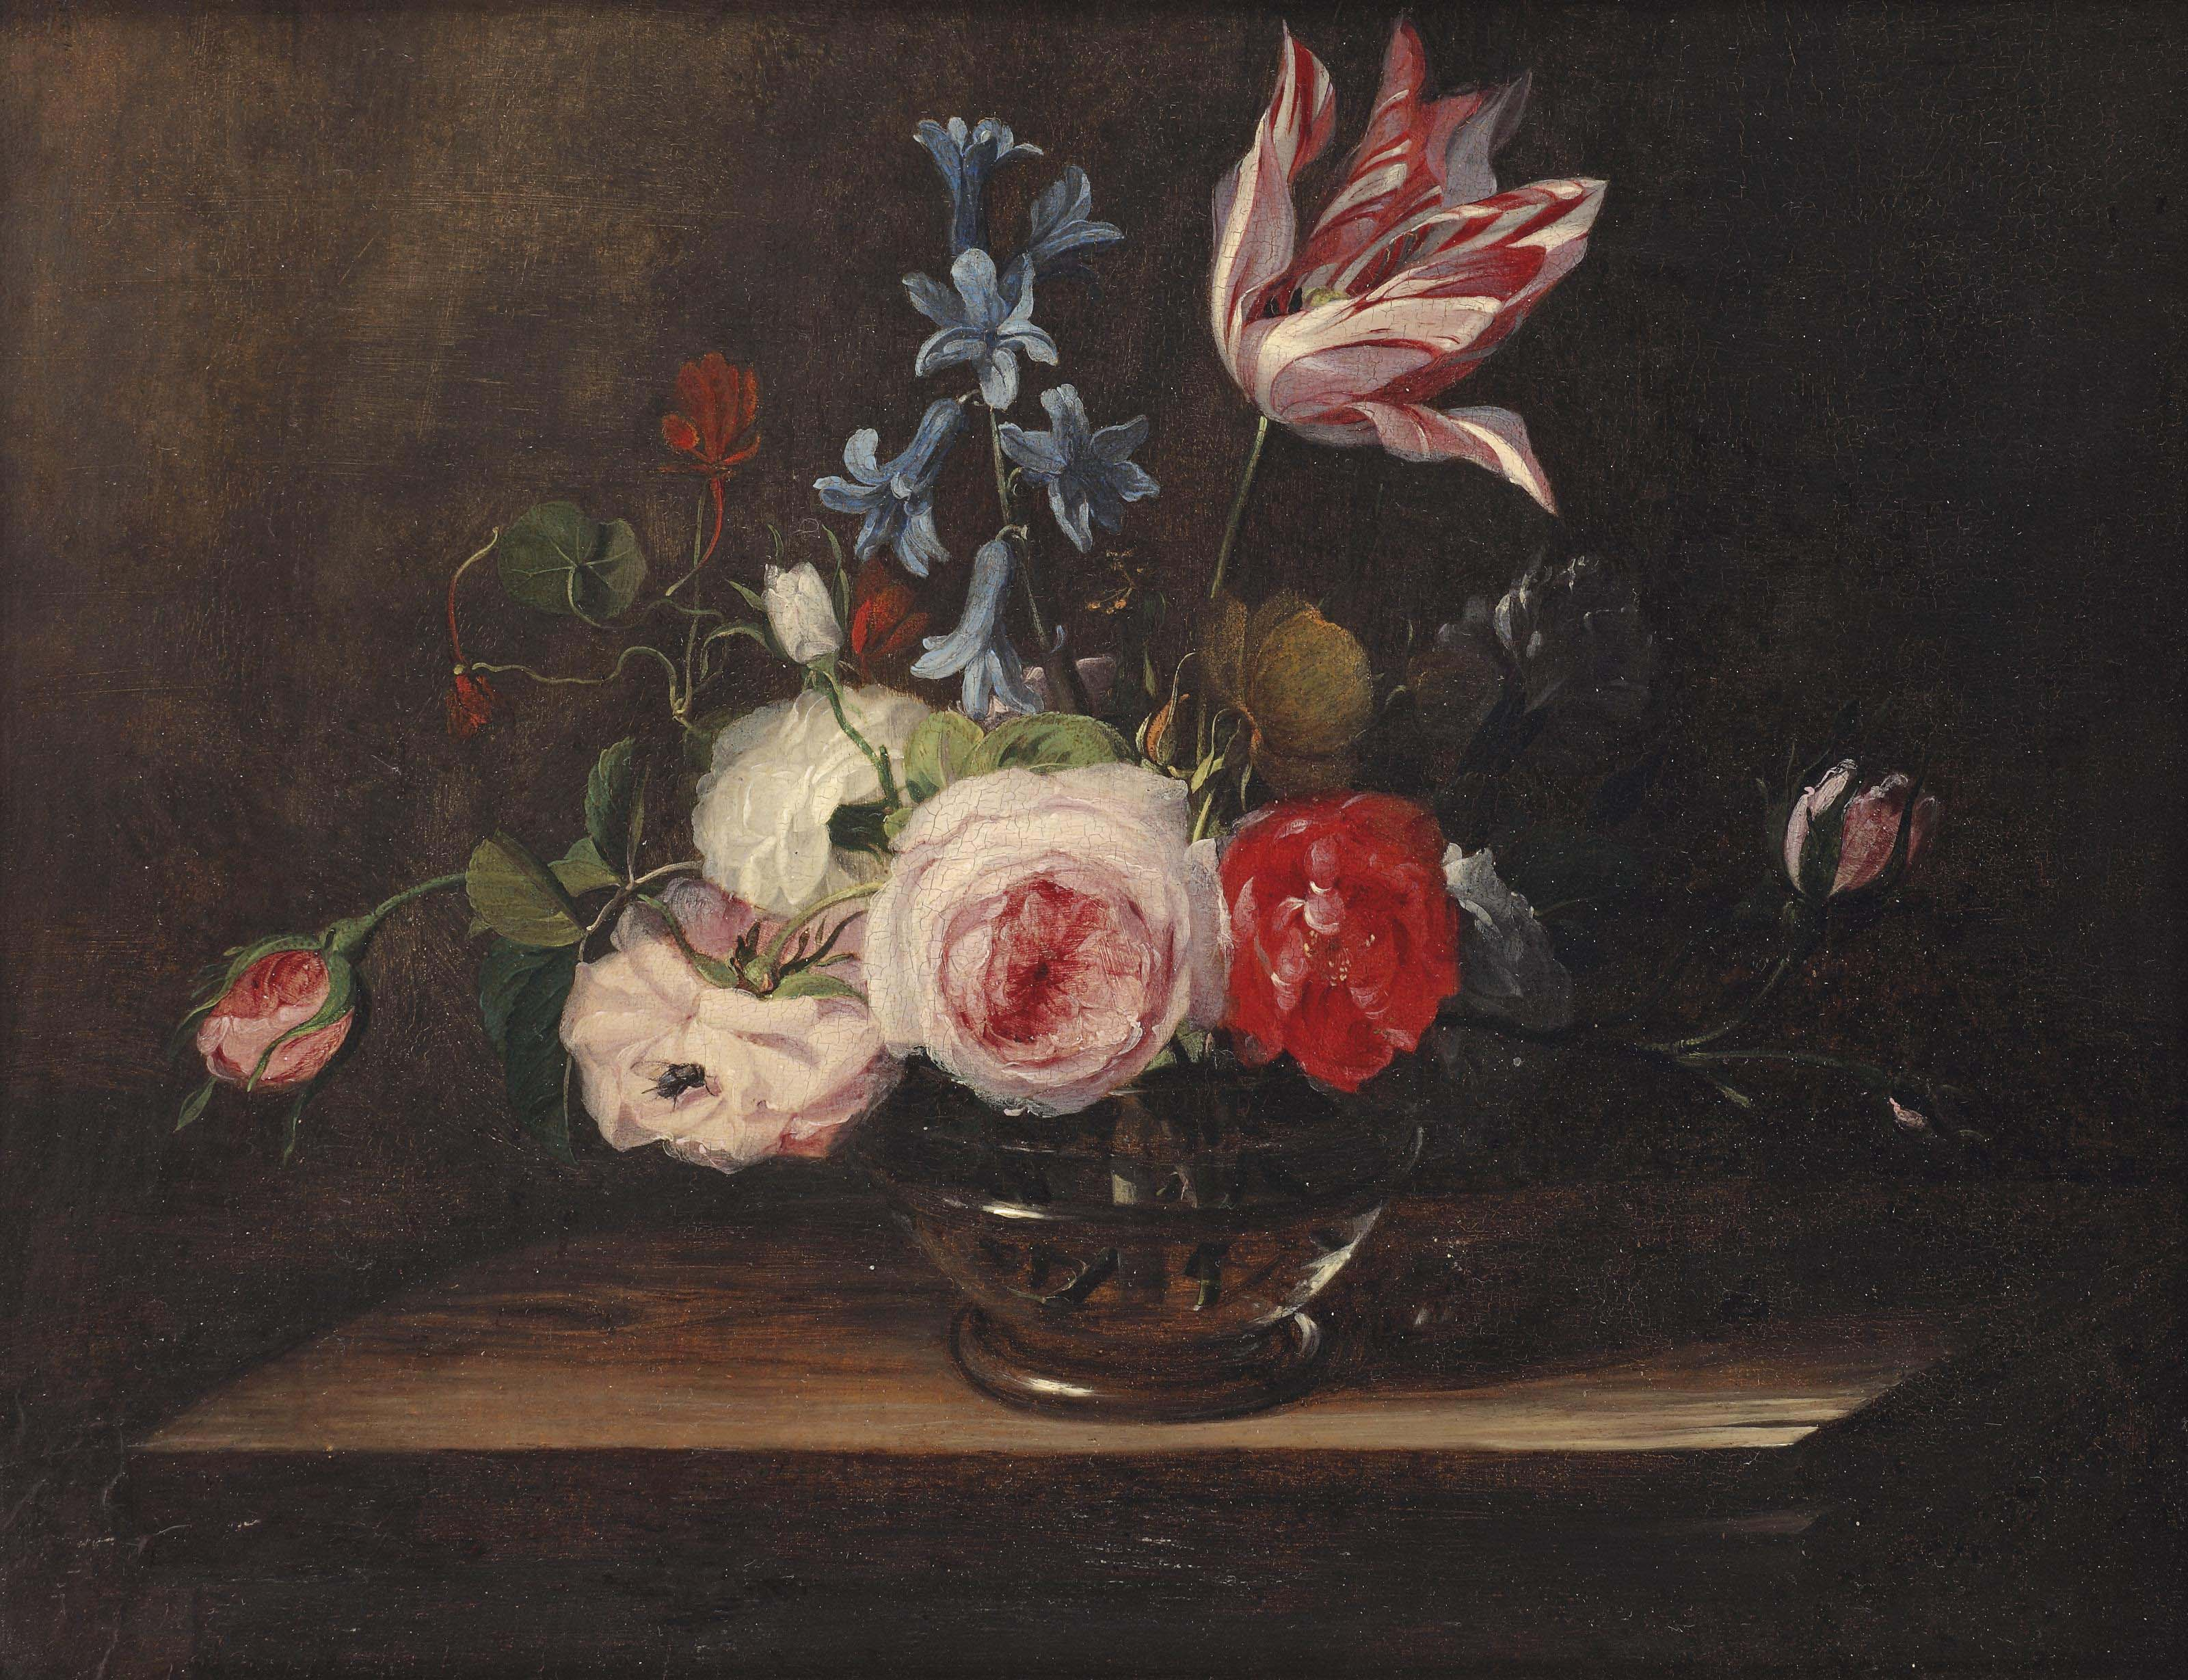 Roses, a tulip, and bluebells in a glass vase, on a wooden ledge